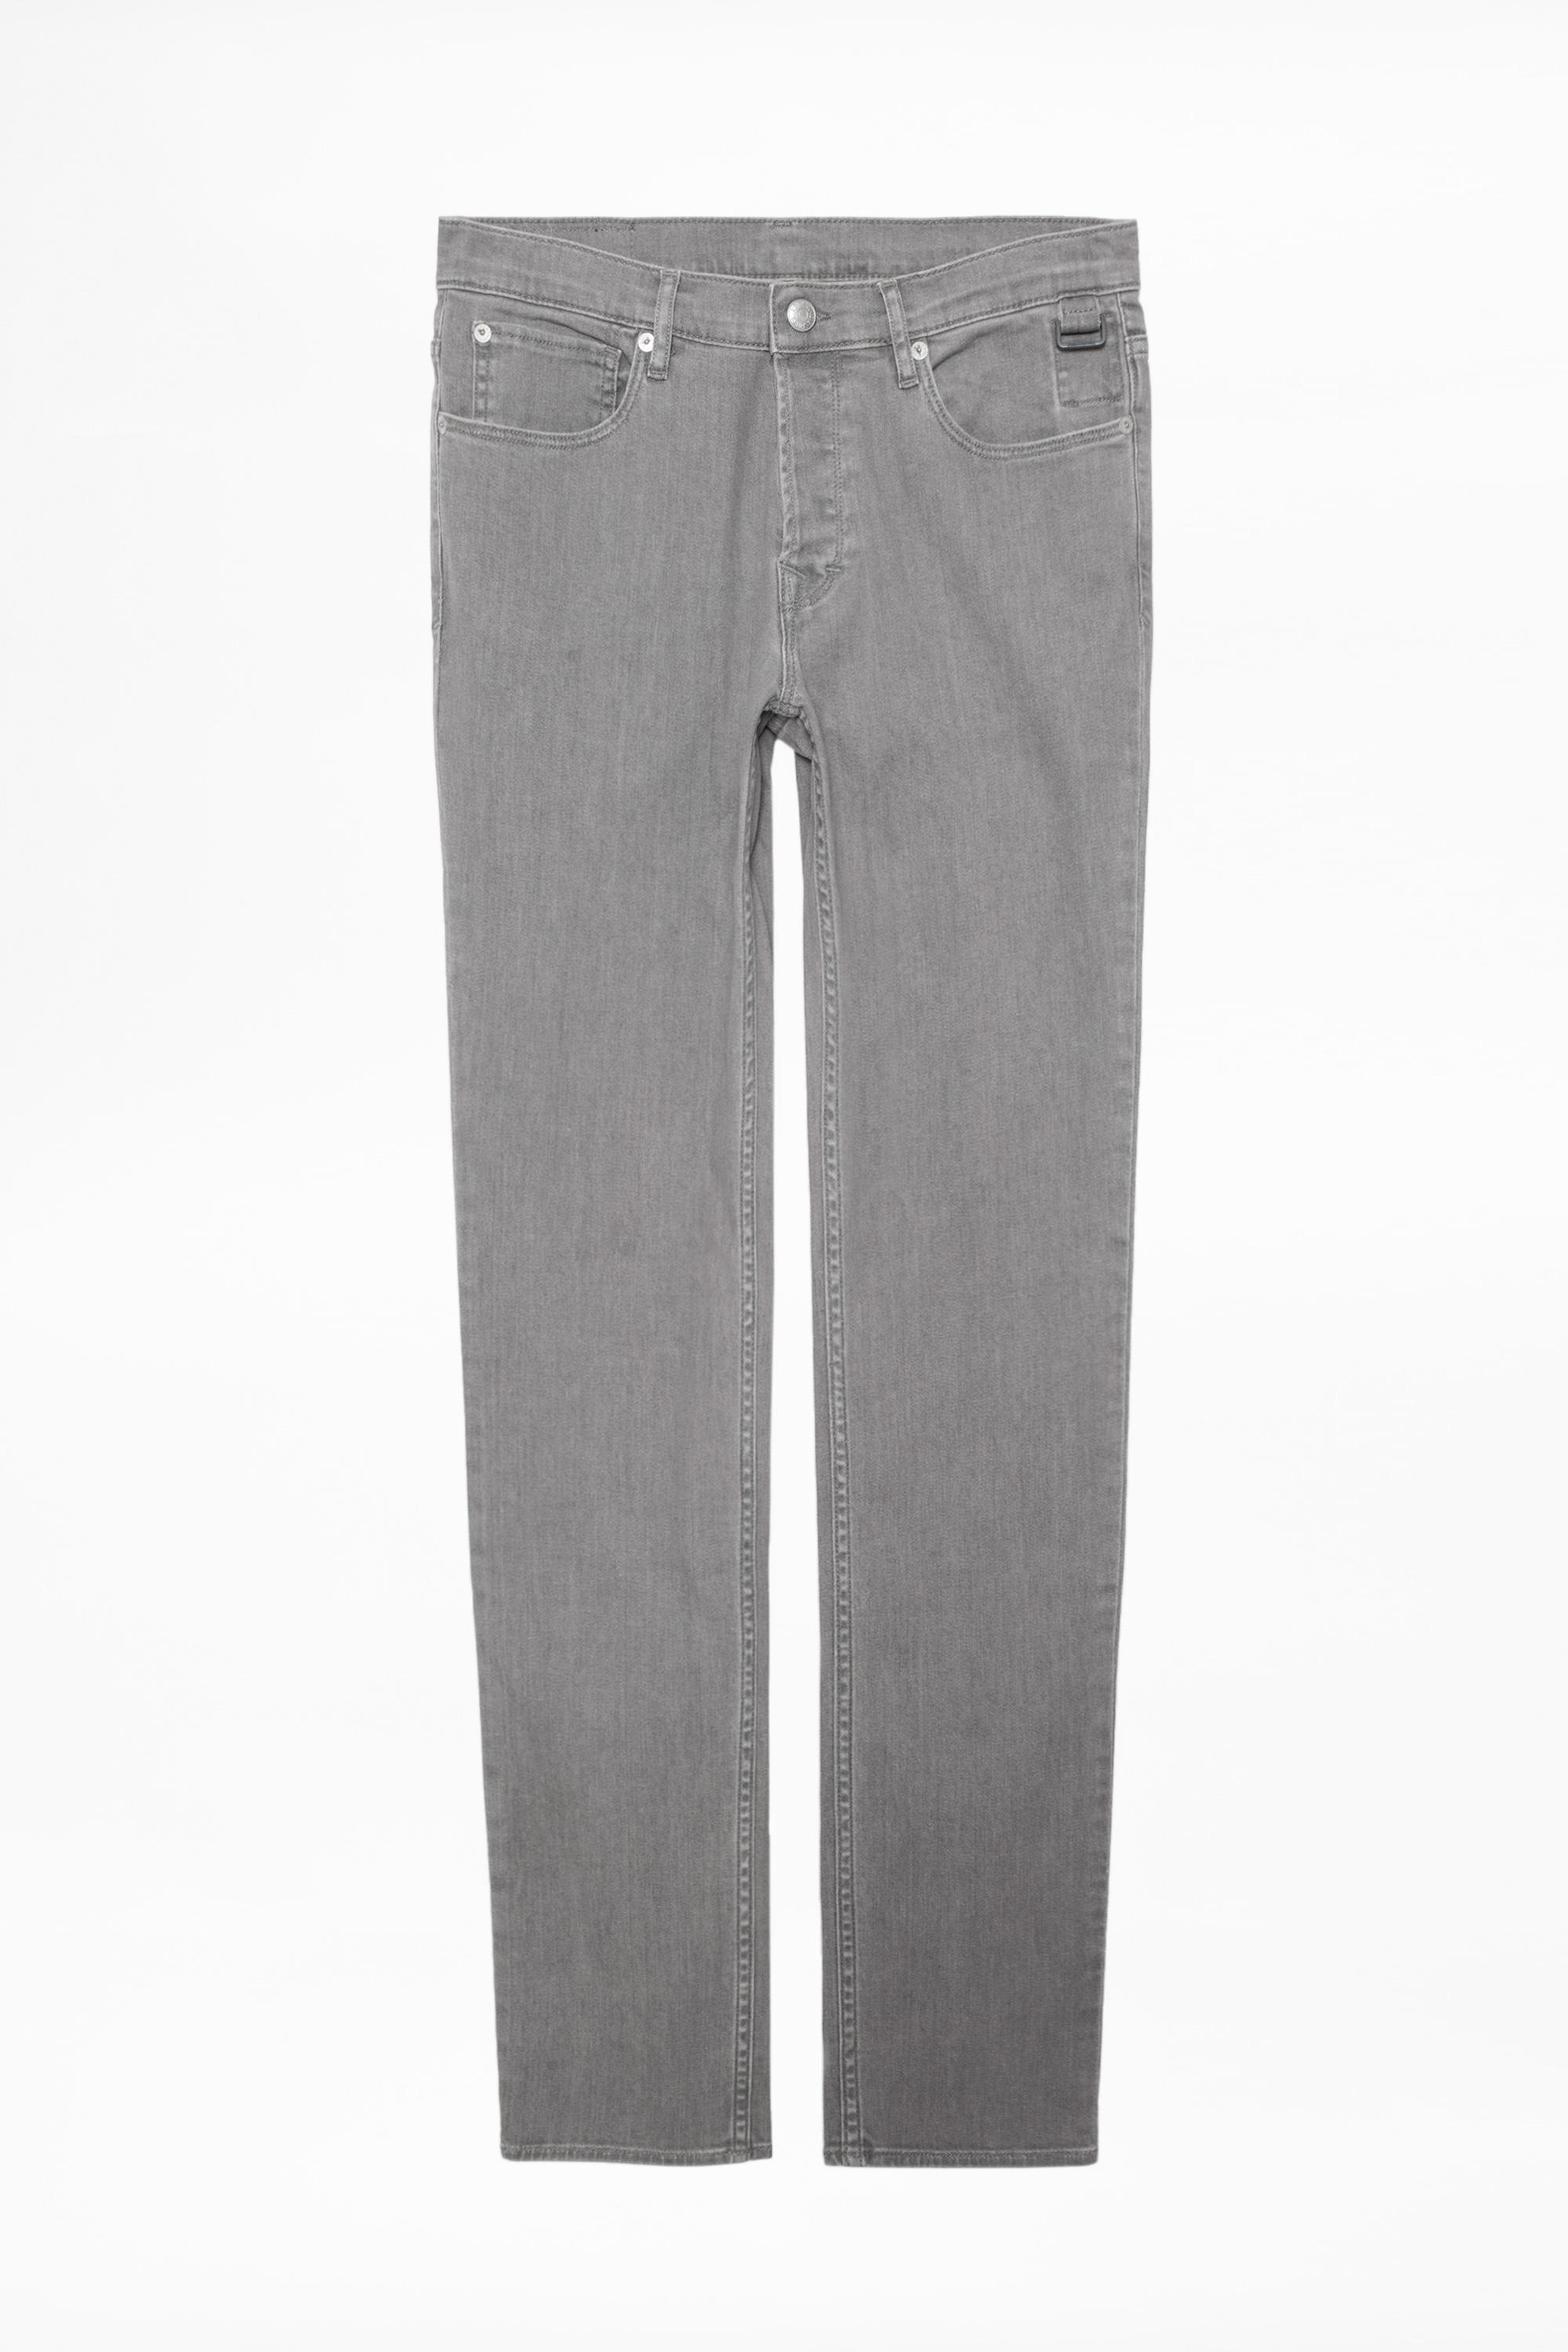 Zadig & Voltaire Denim David Grey Jeans in Grey for Men